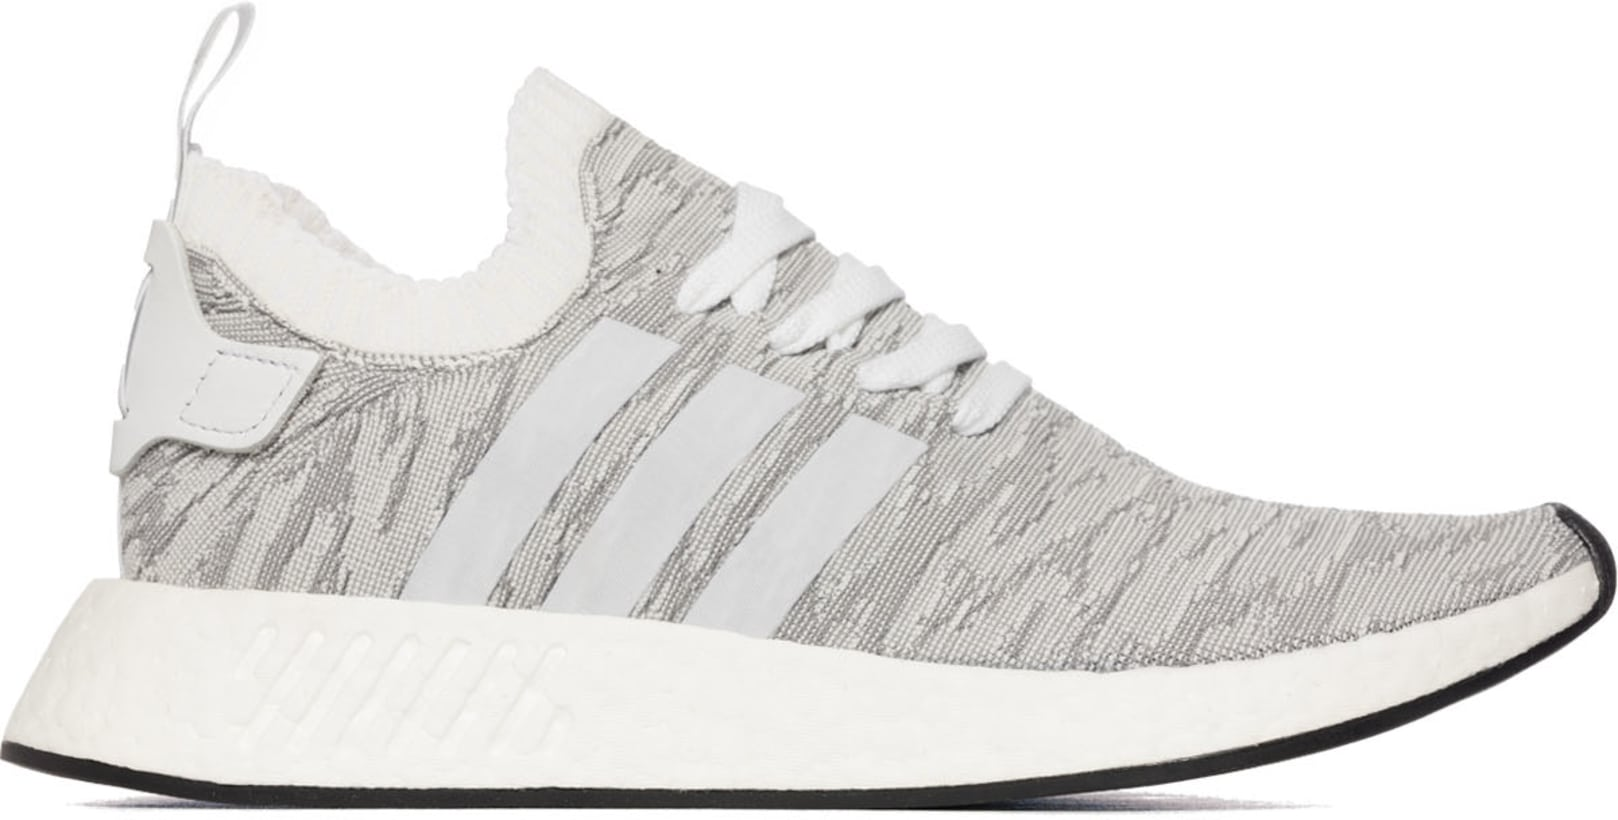 huge selection of 23ec0 67cde adidas Originals - NMD R2 Primeknit - Grey/Footwear White/Core Black/Future  Harvest